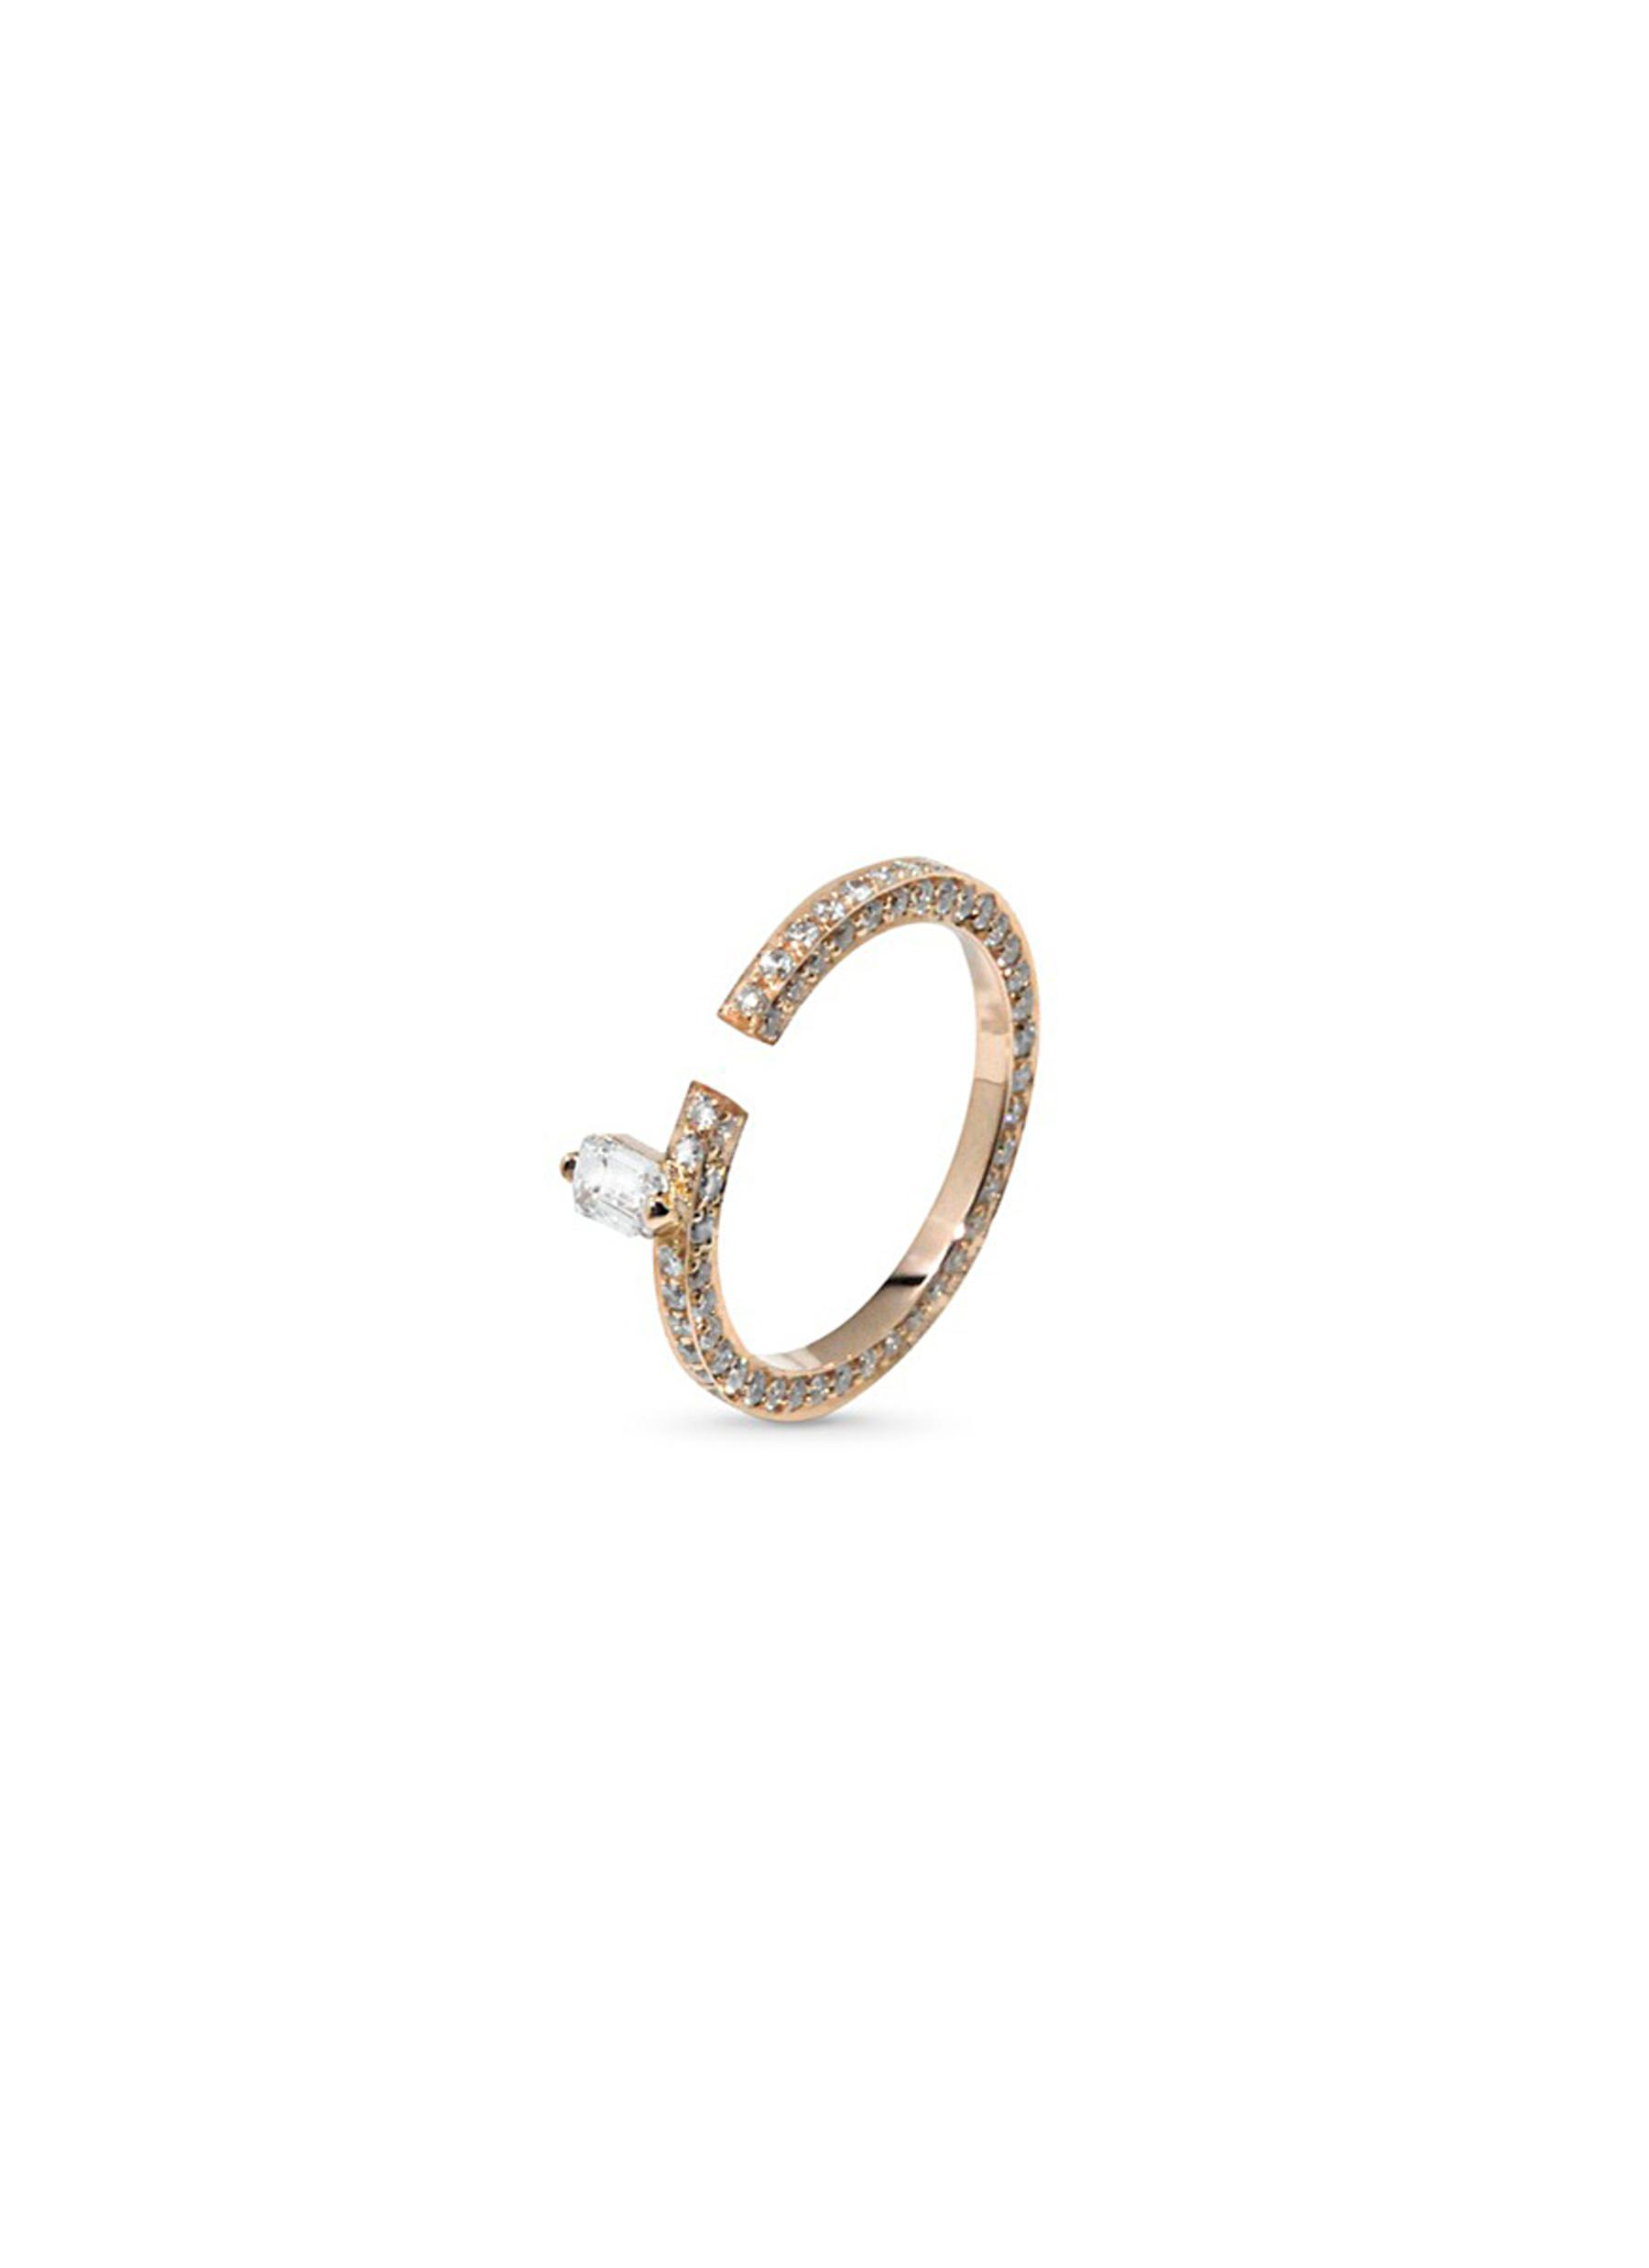 Disruptive pavé diamond 18k rose gold ring by Dauphin